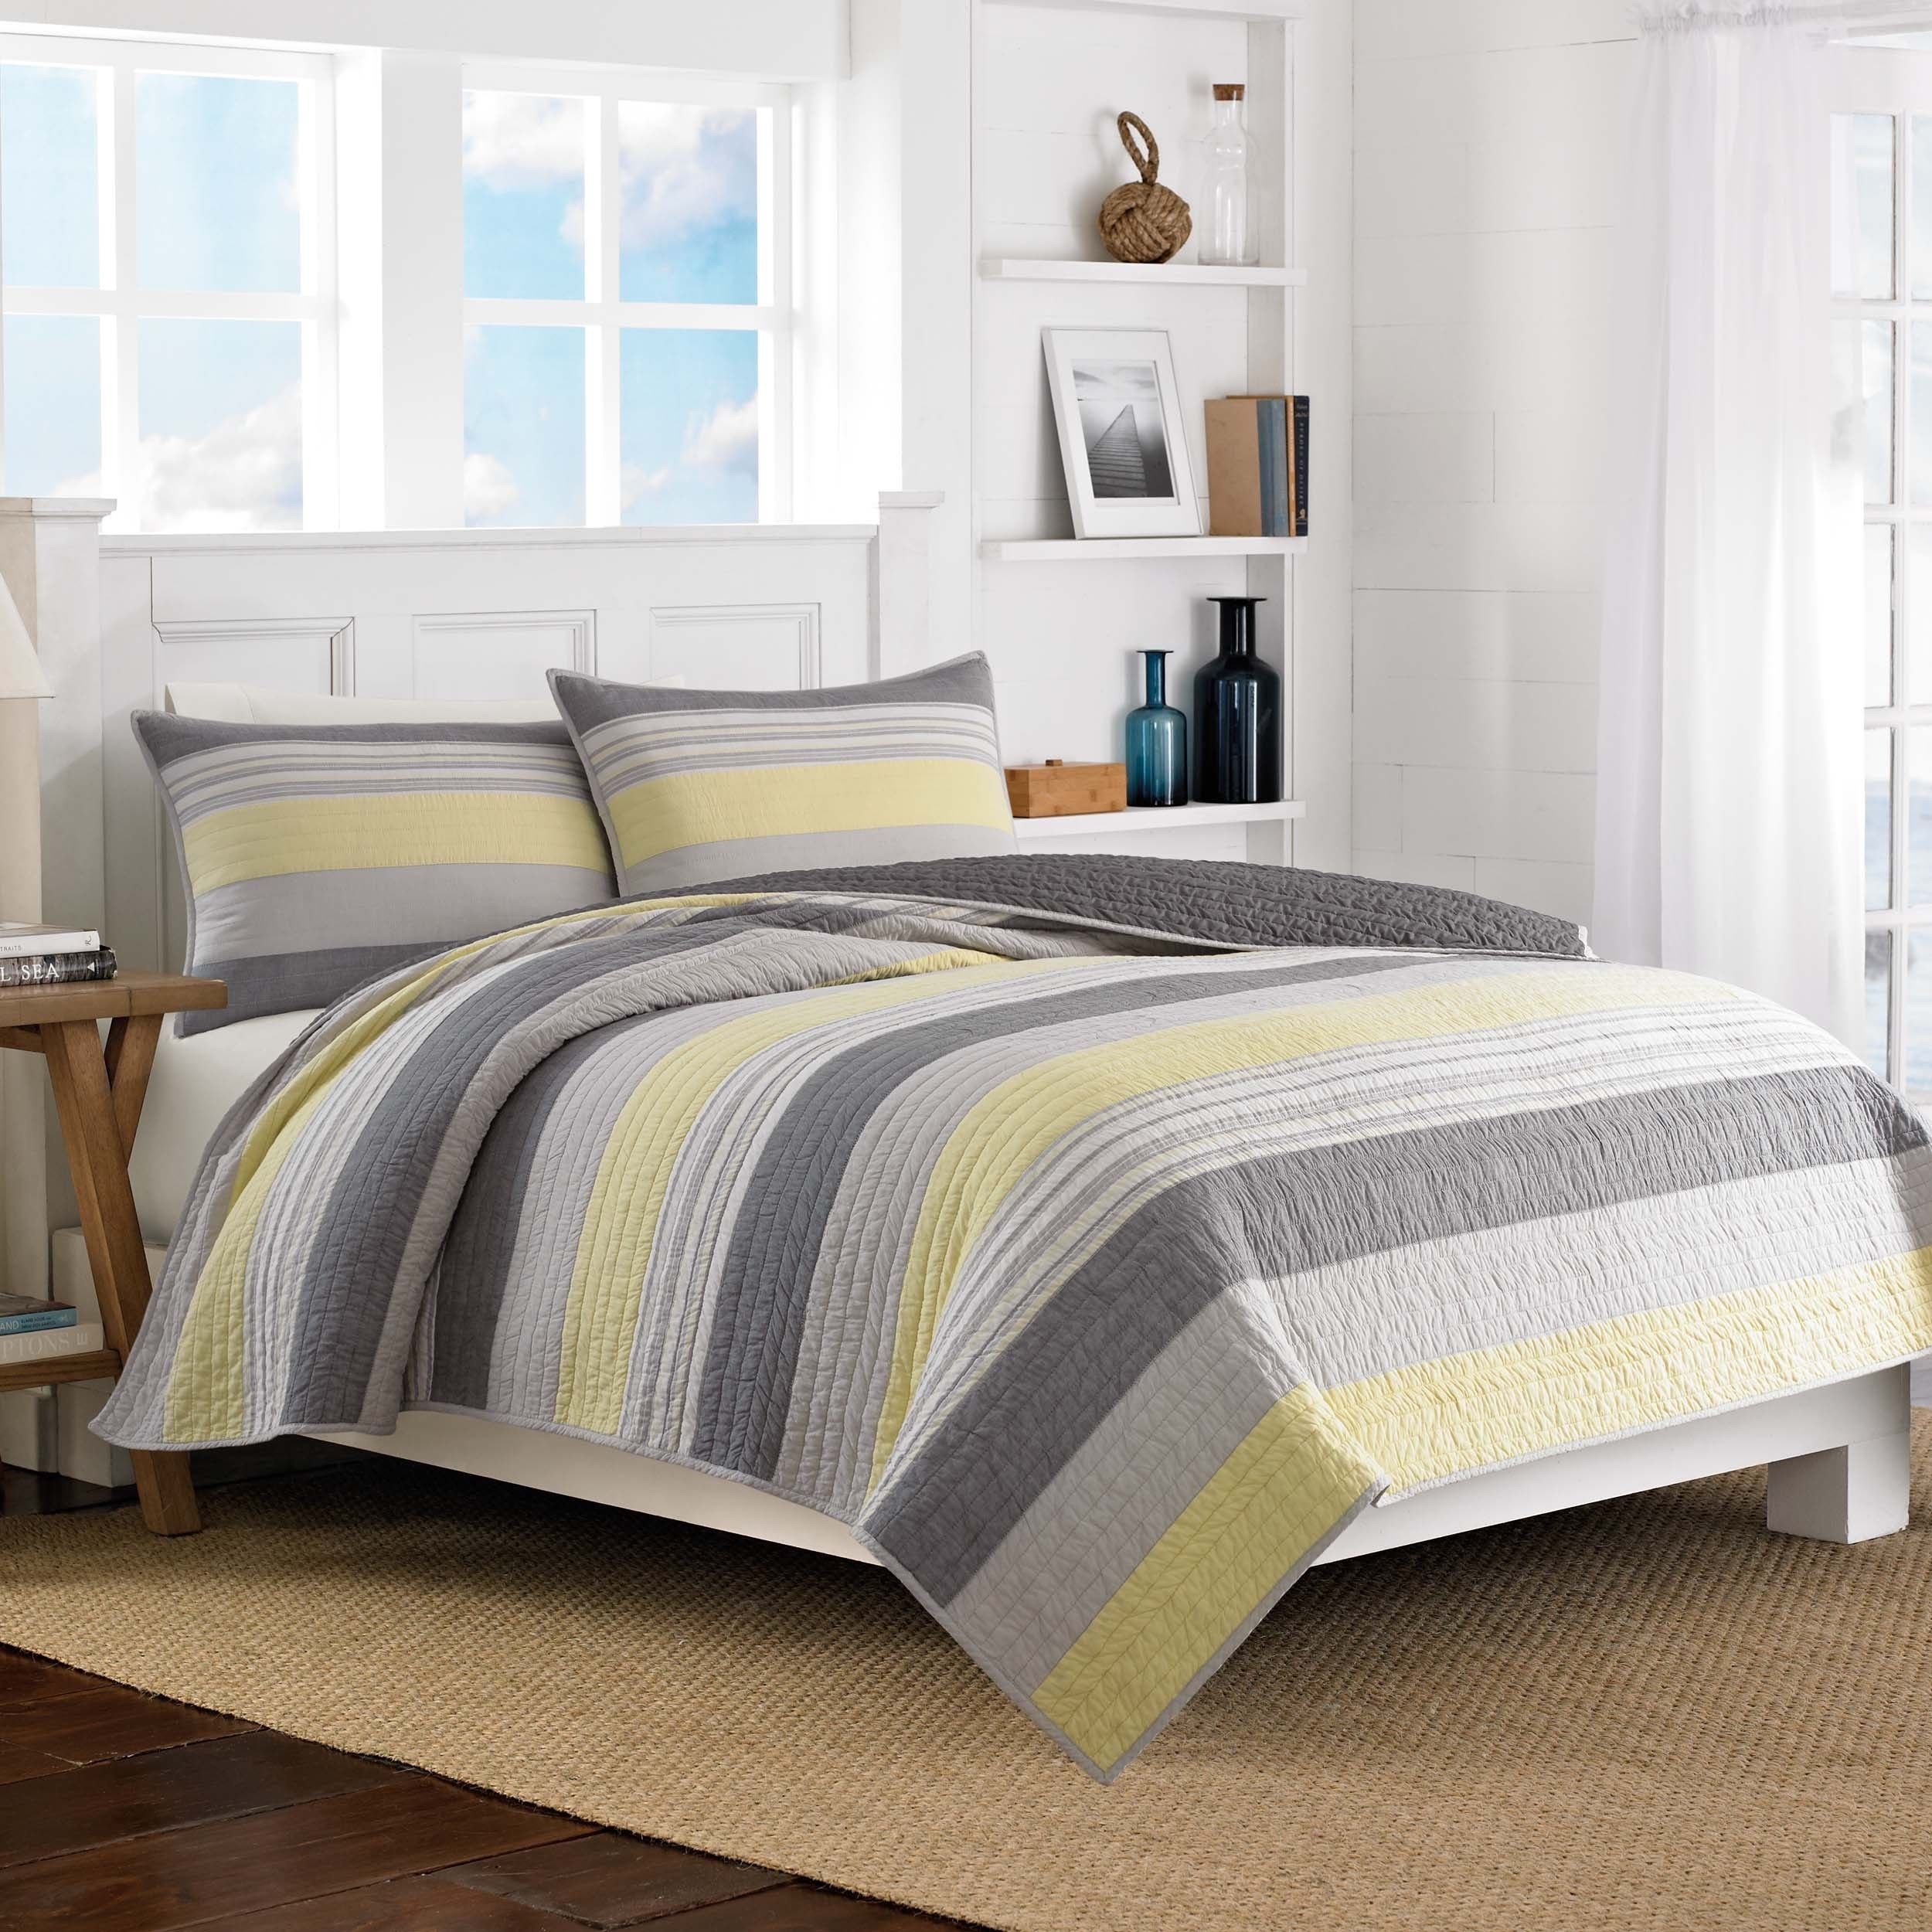 setbautiful bedspreads and bautiful quilt oversized home amazing floral measurements quilts comforters posy inspire with bedding decor quilted galleria king bedspread your idea comforter to as